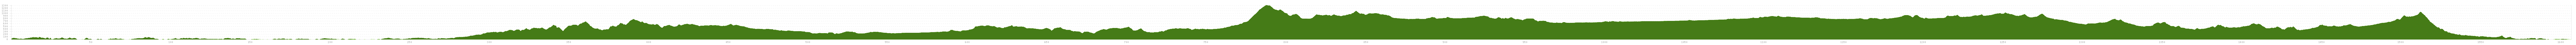 Elevation profile Cycle Tour Cabo St. Vincente - Labenne